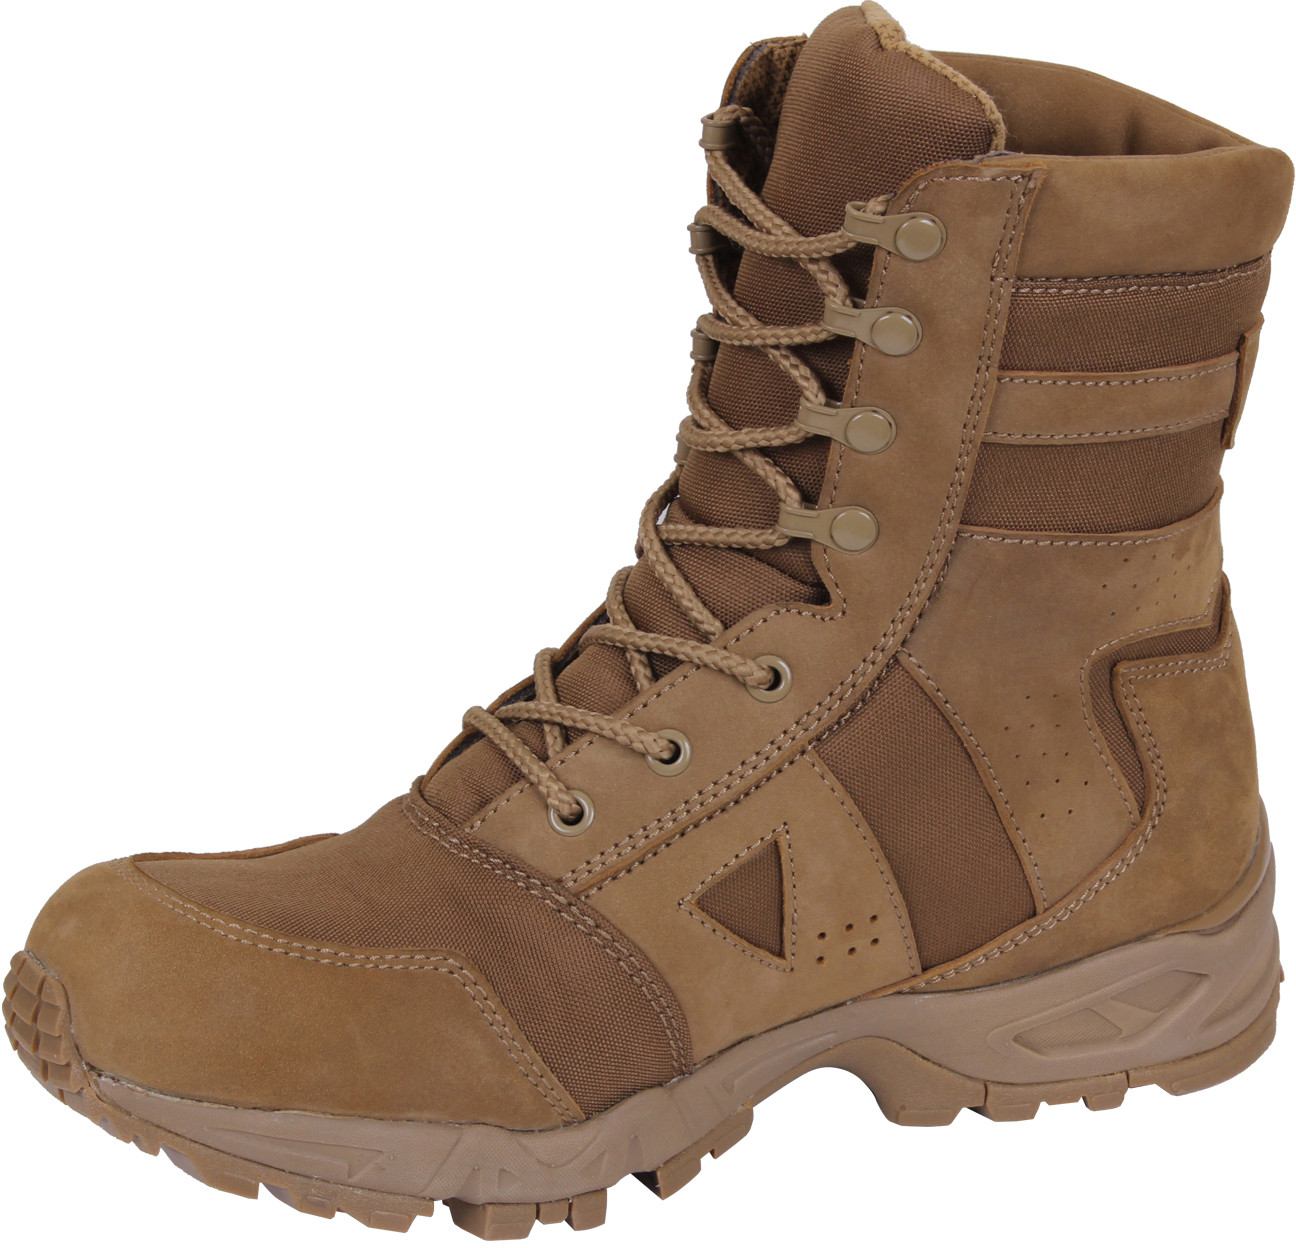 Coyote Brown AR 670-1 Compliant Forced Entry Tactical Boots da690987c13